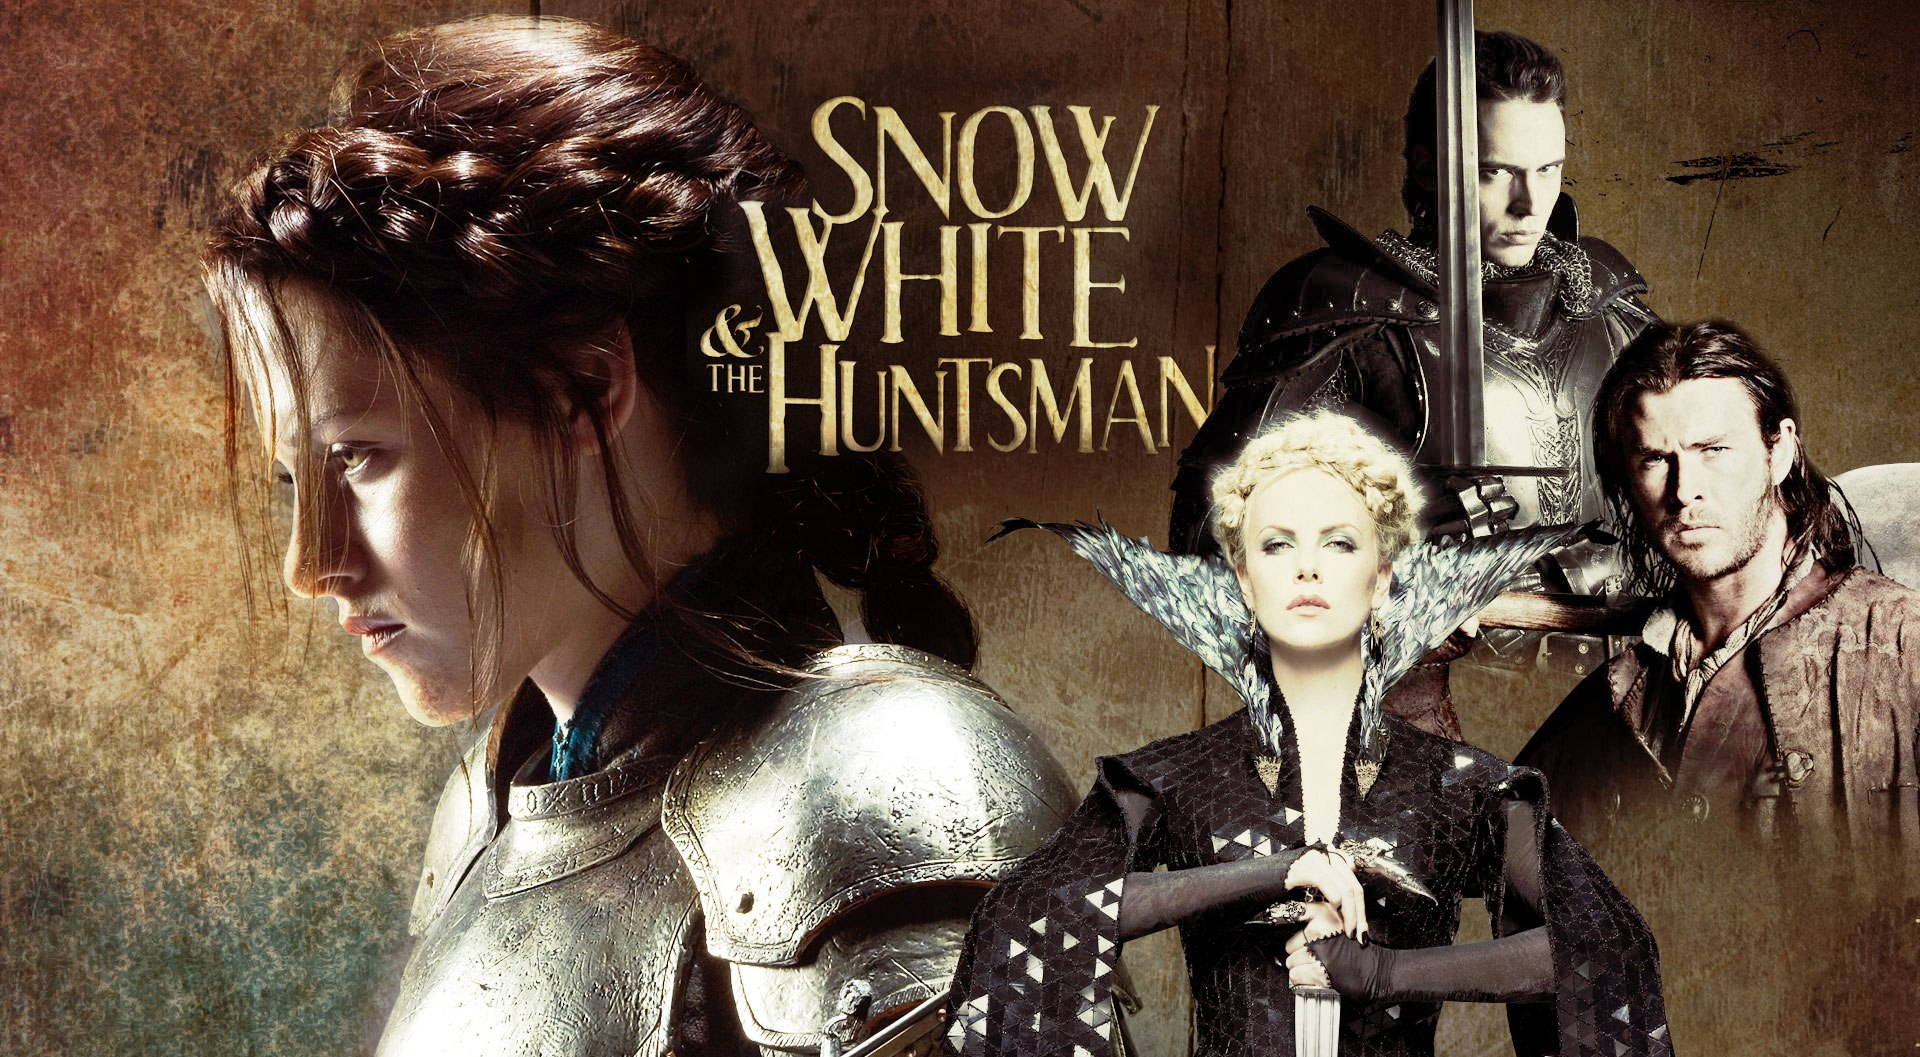 Snow-White-and-the-Huntsman-wallpaper-snow-white-and-the-huntsman